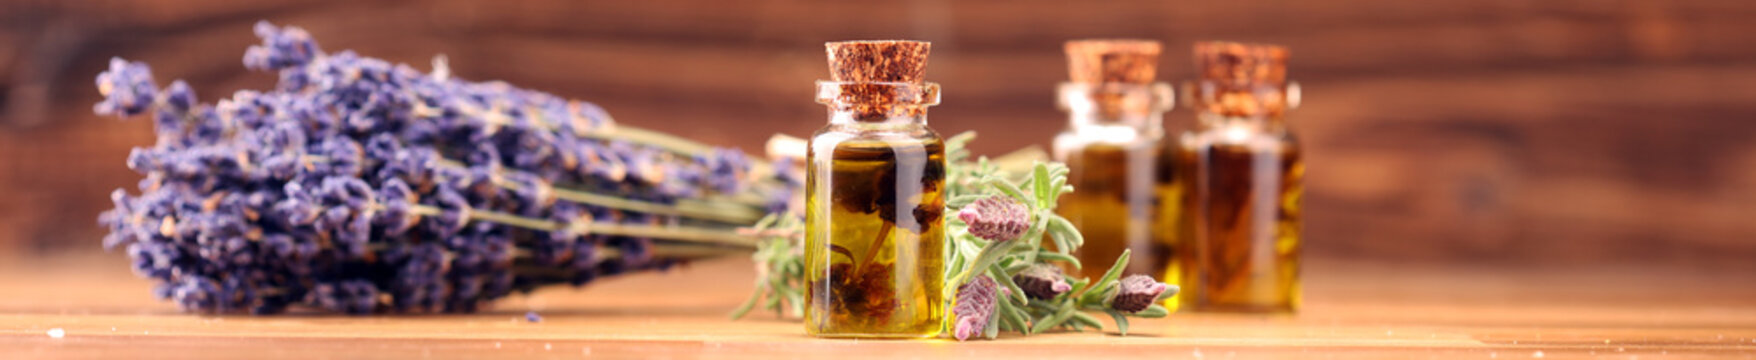 essential lavender oil in a glass bottle on a background of fresh flowers